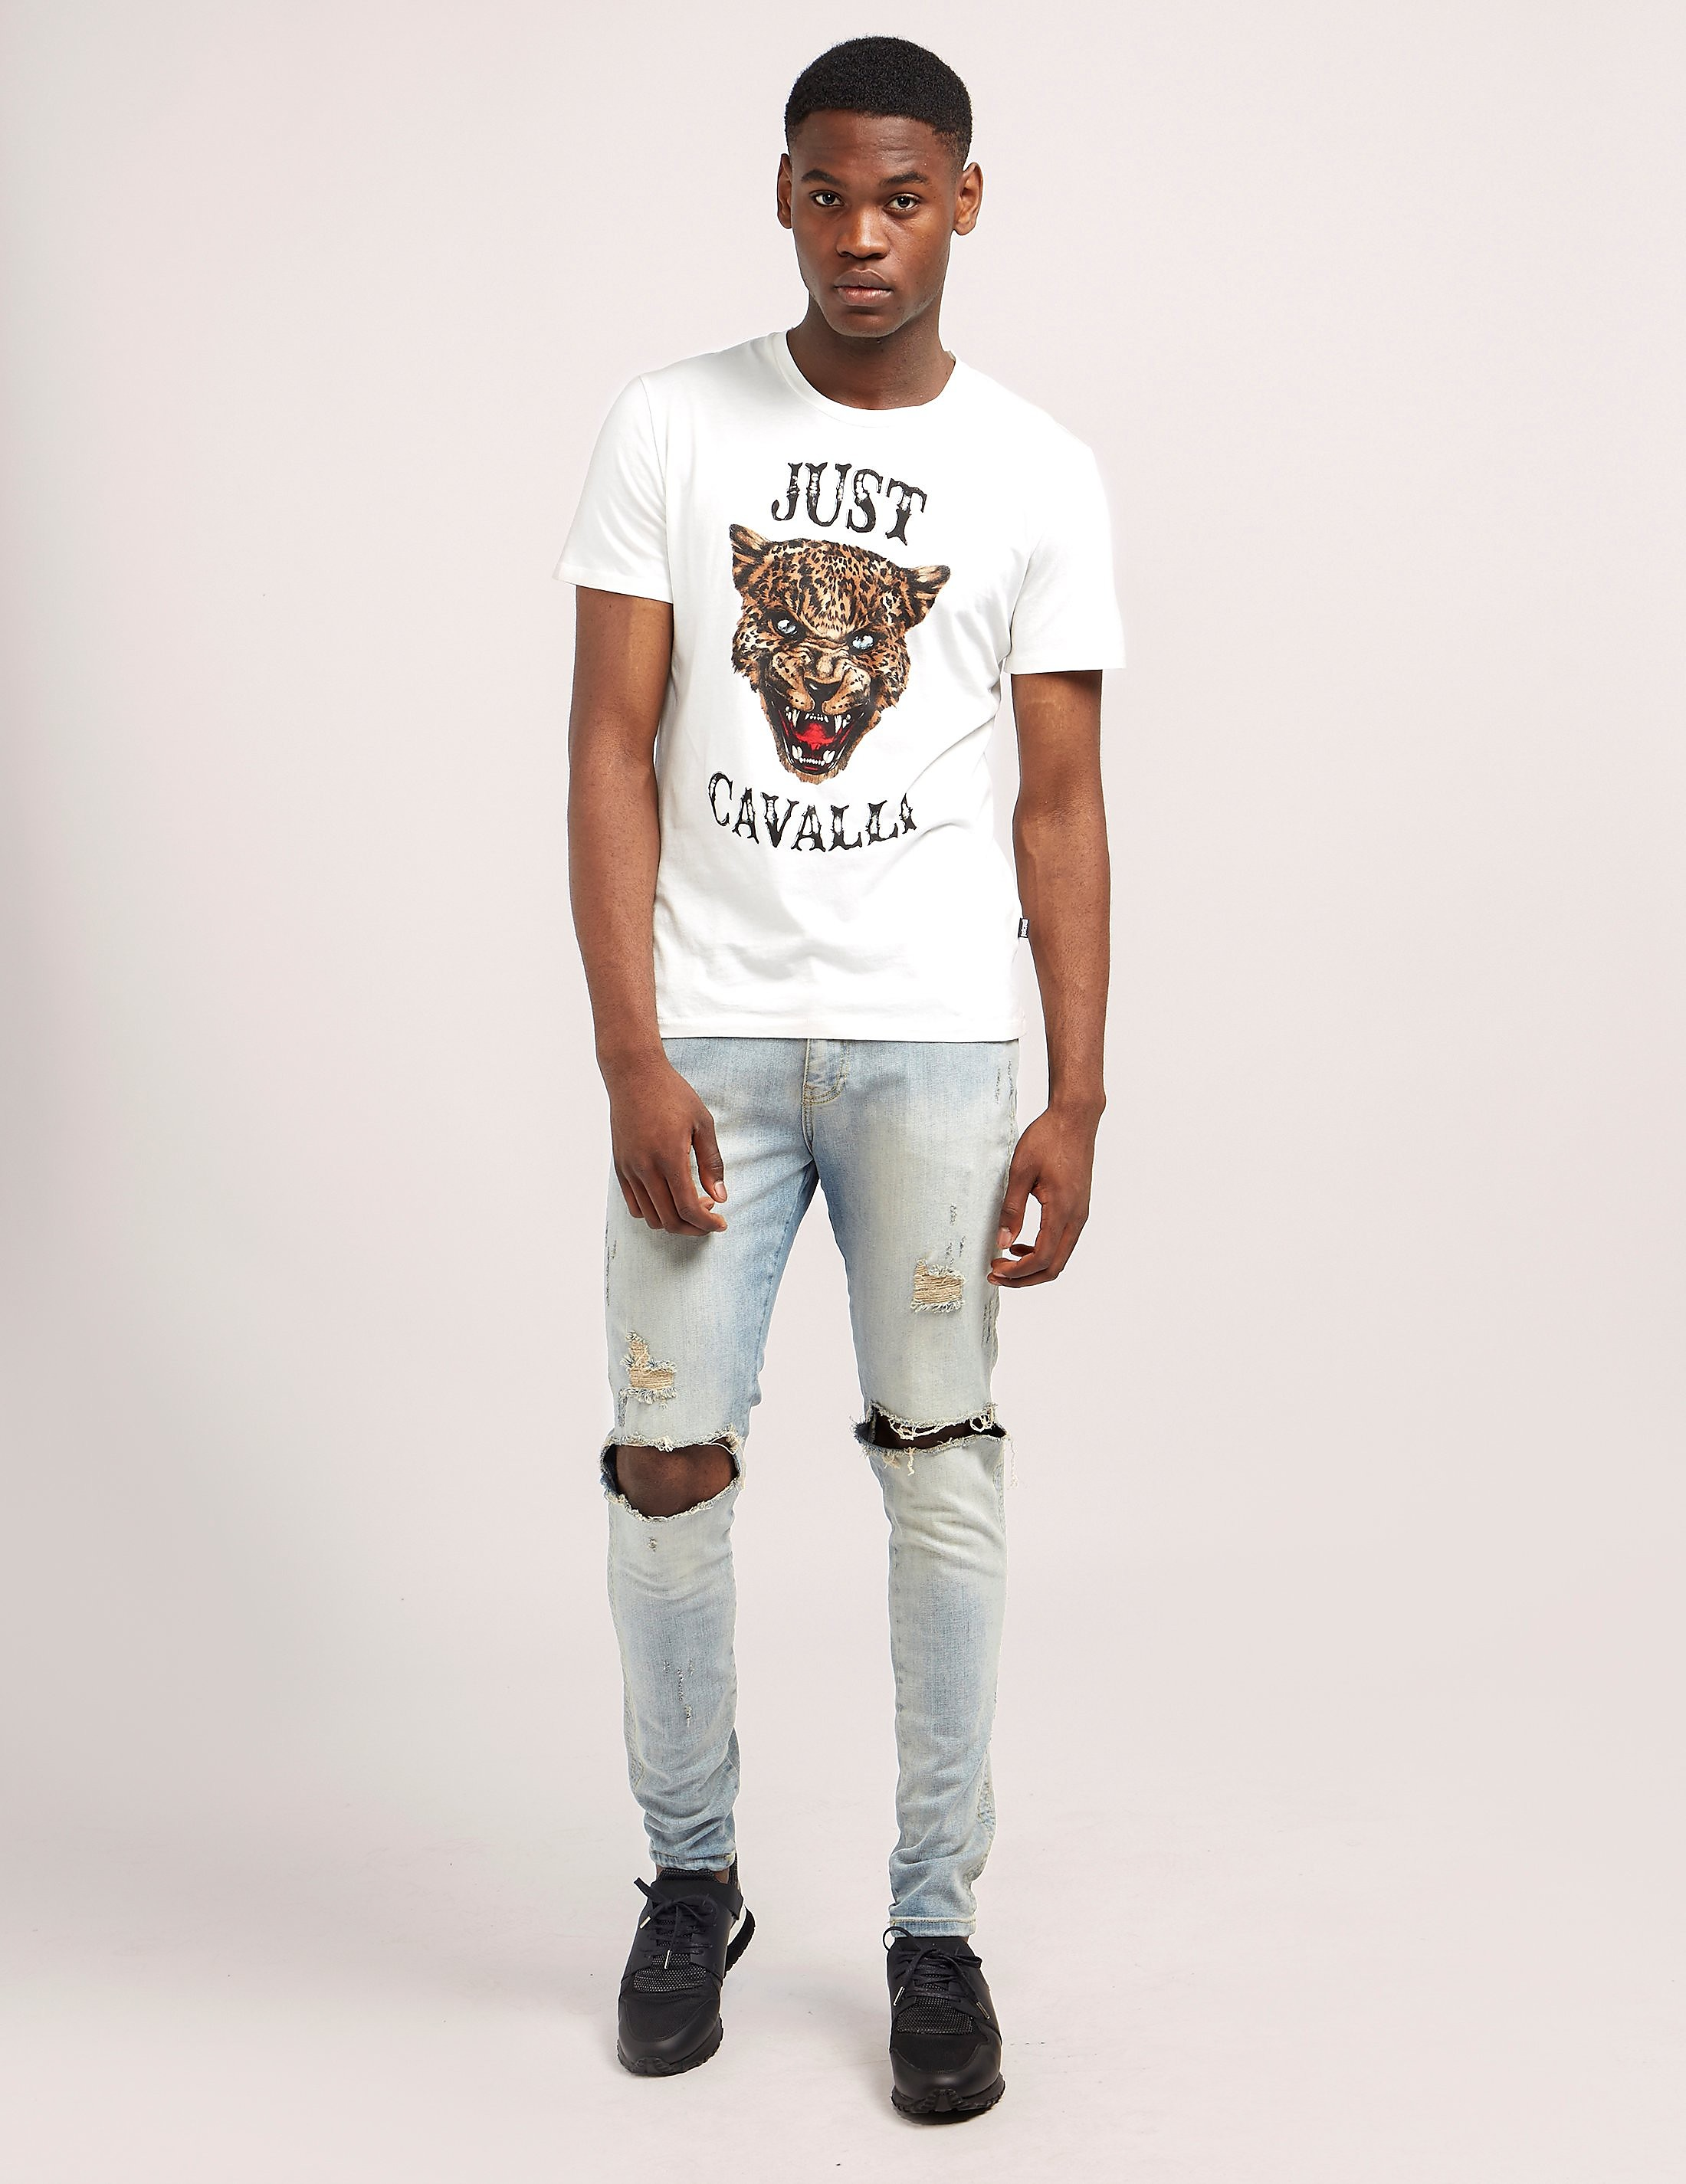 Just Cavalli Leopard Short Sleeve T-Shirt